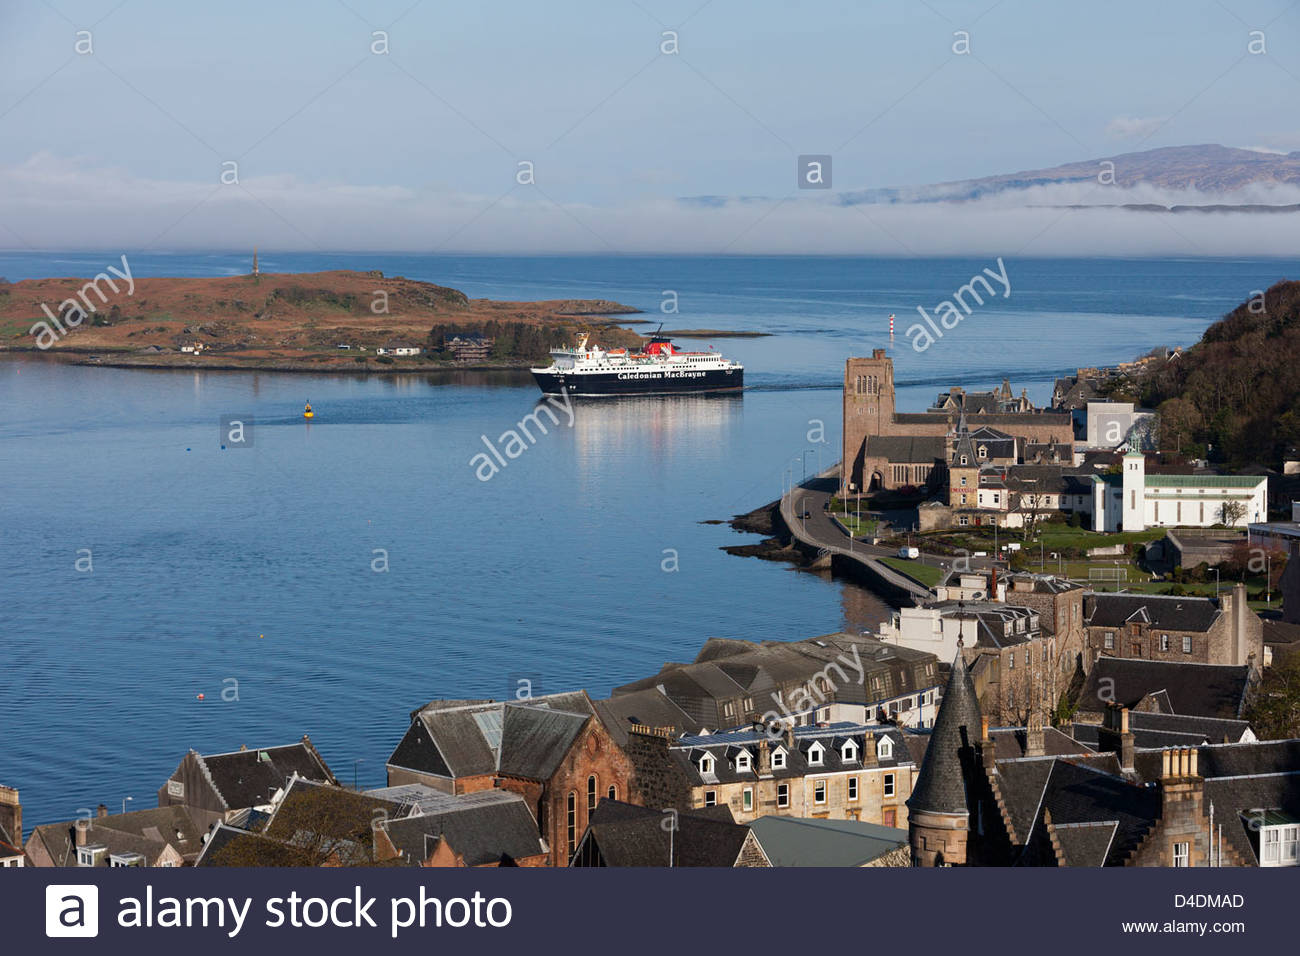 Caledonian MacBrayne ferry arriving into Oban from Craignure on the Isle of Mull. - Stock Image